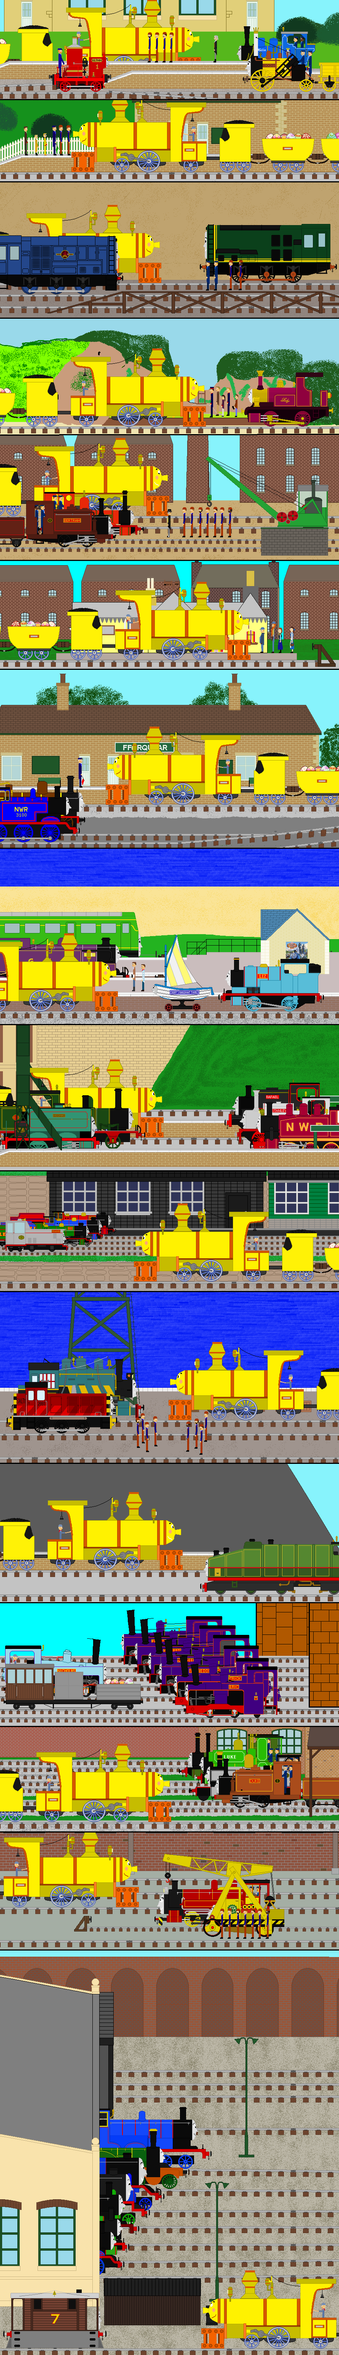 Distributing Easter eggs by Sodor by pauloddd2005